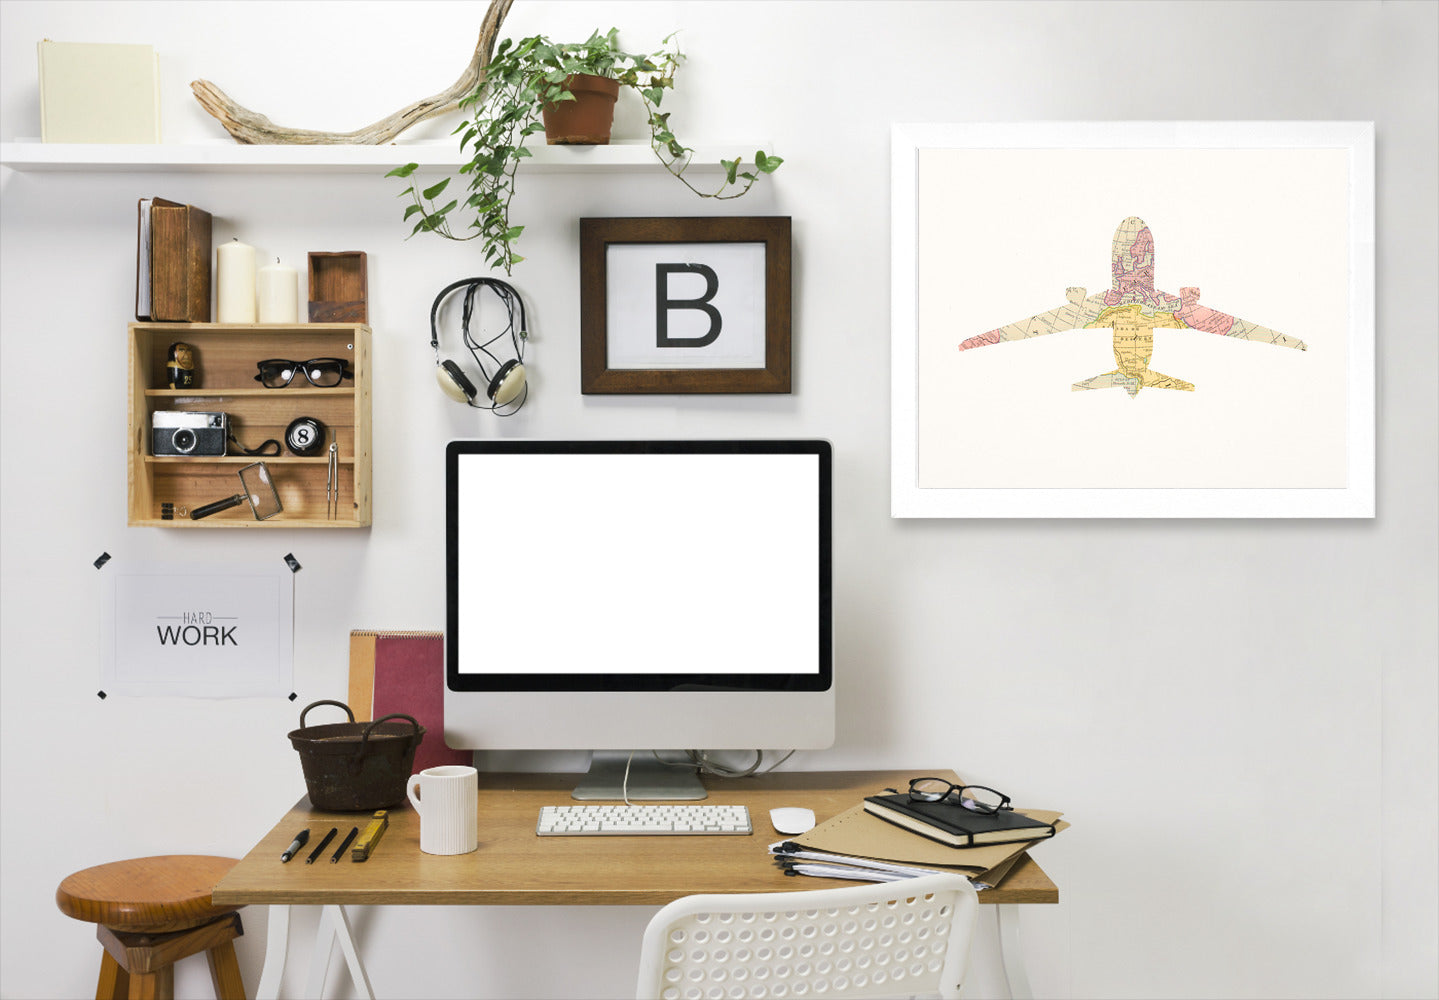 Vintage Map Plane Collage Ii By Chaos & Wonder Design - White Framed Print